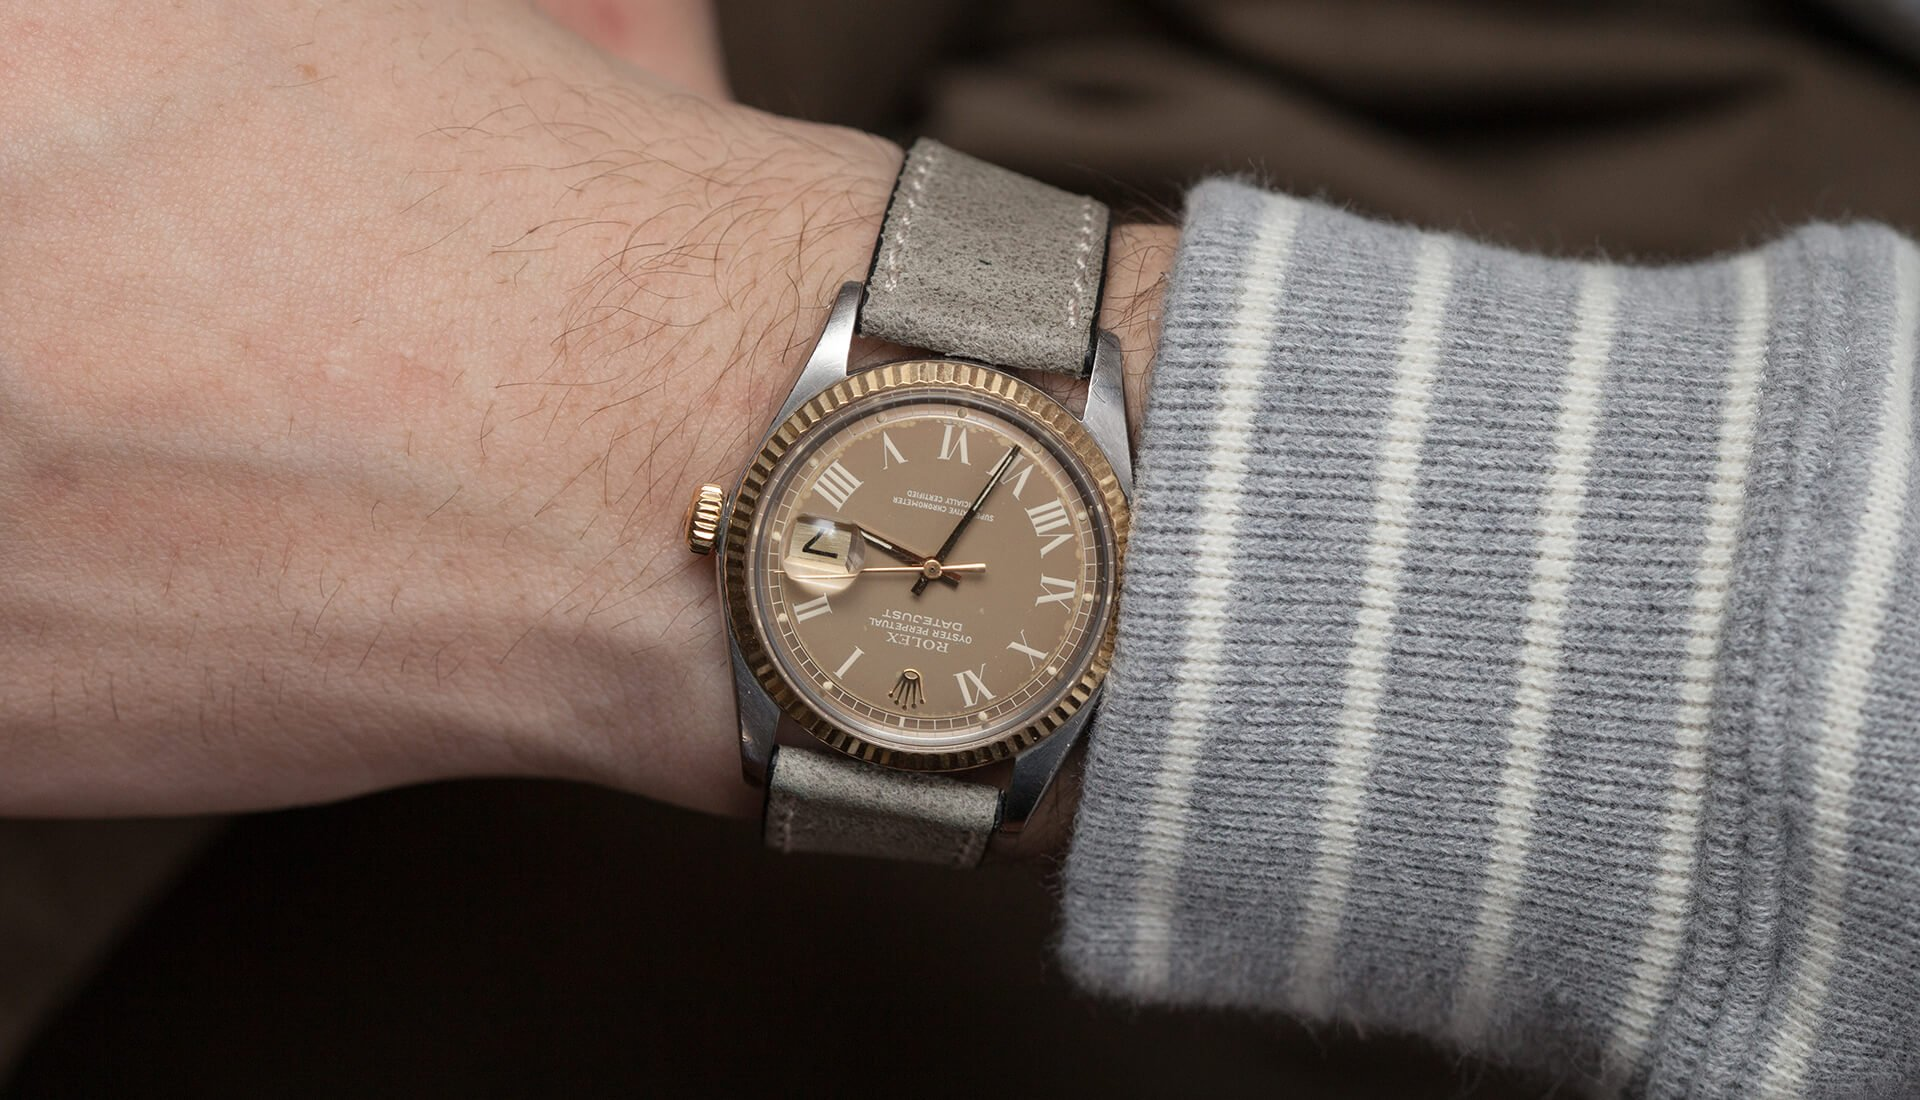 Watch 101: Why is Rolex the KING of Mainstream Luxury?